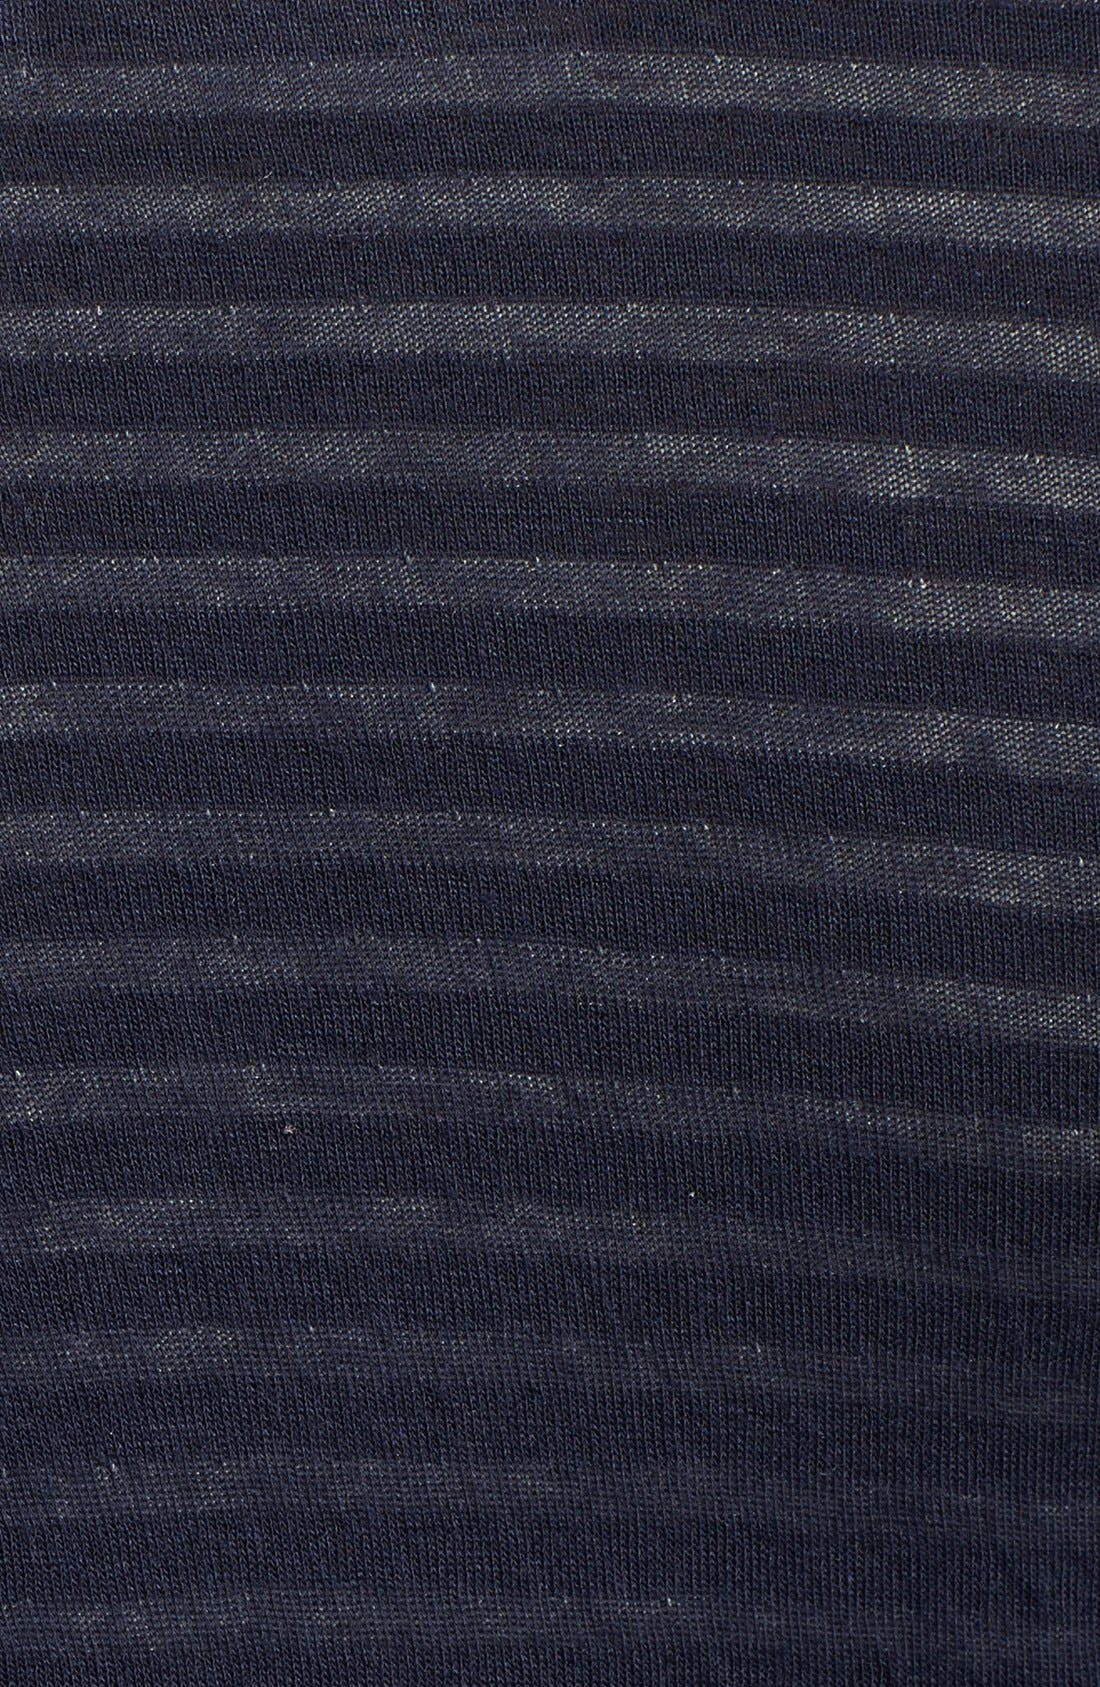 Alternate Image 3  - Whetherly 'Rosewood' Stripe Double Knit Jersey Top